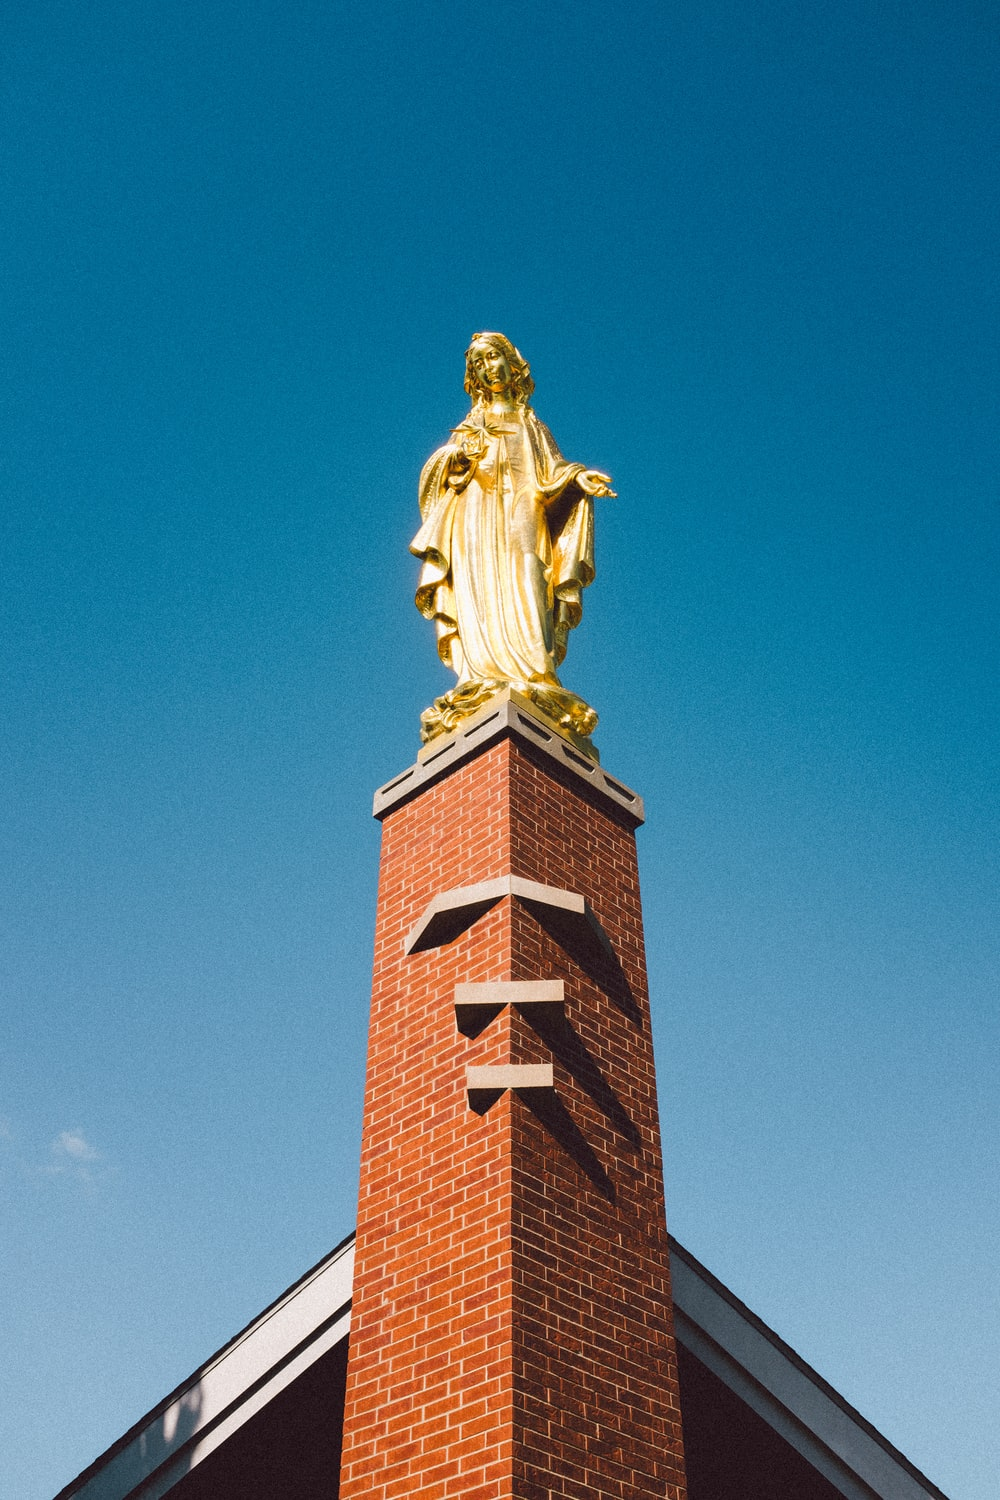 low angle photo of statue on tower